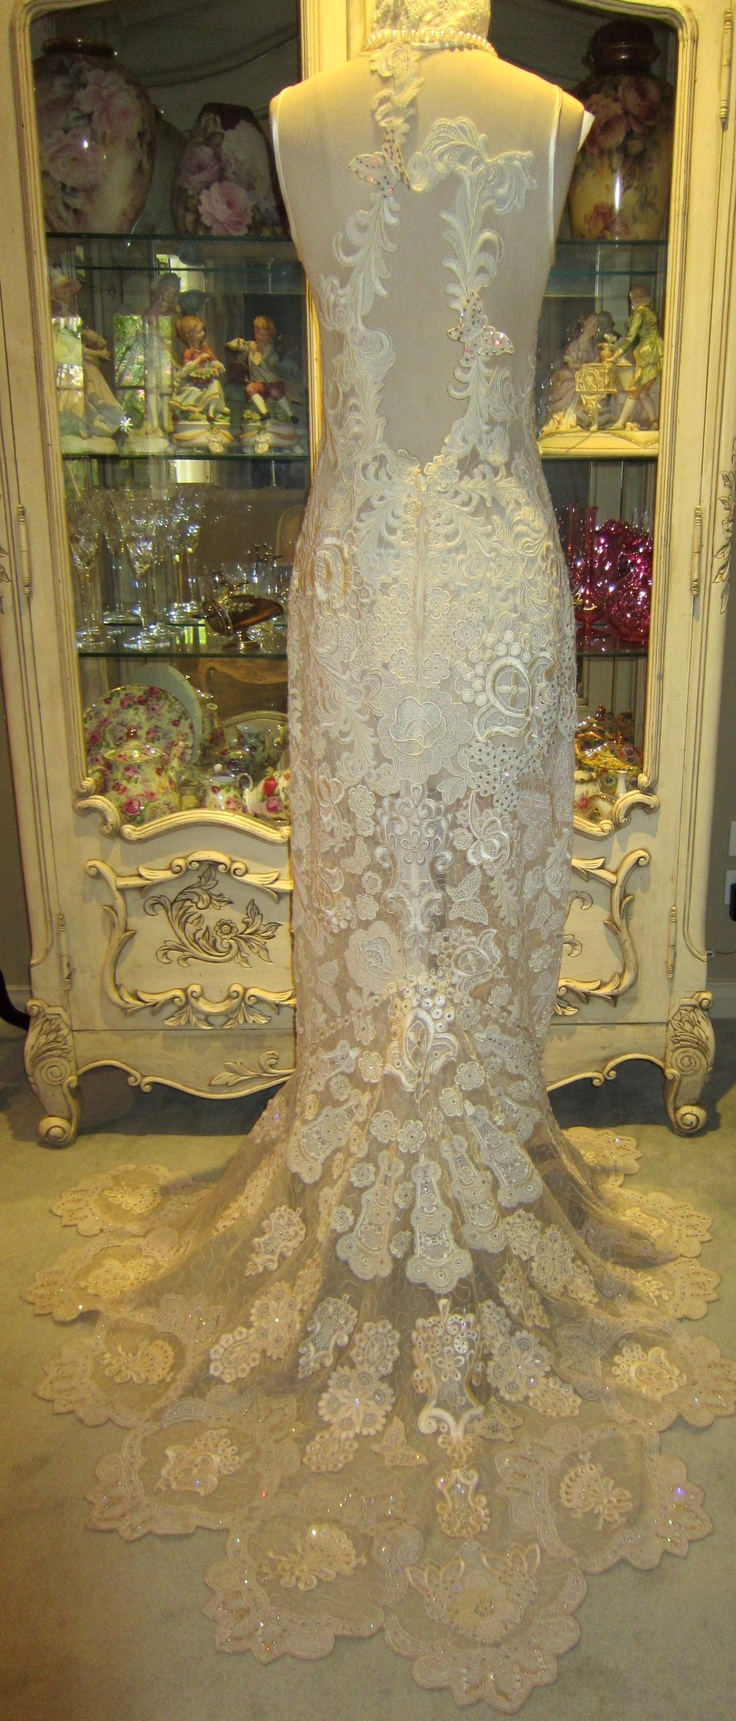 If we dream we can do - made from Jenny Haskins' fabulous lace. Jenny drew the lace, embroidered the lace and made the dress - simply to-die-for!